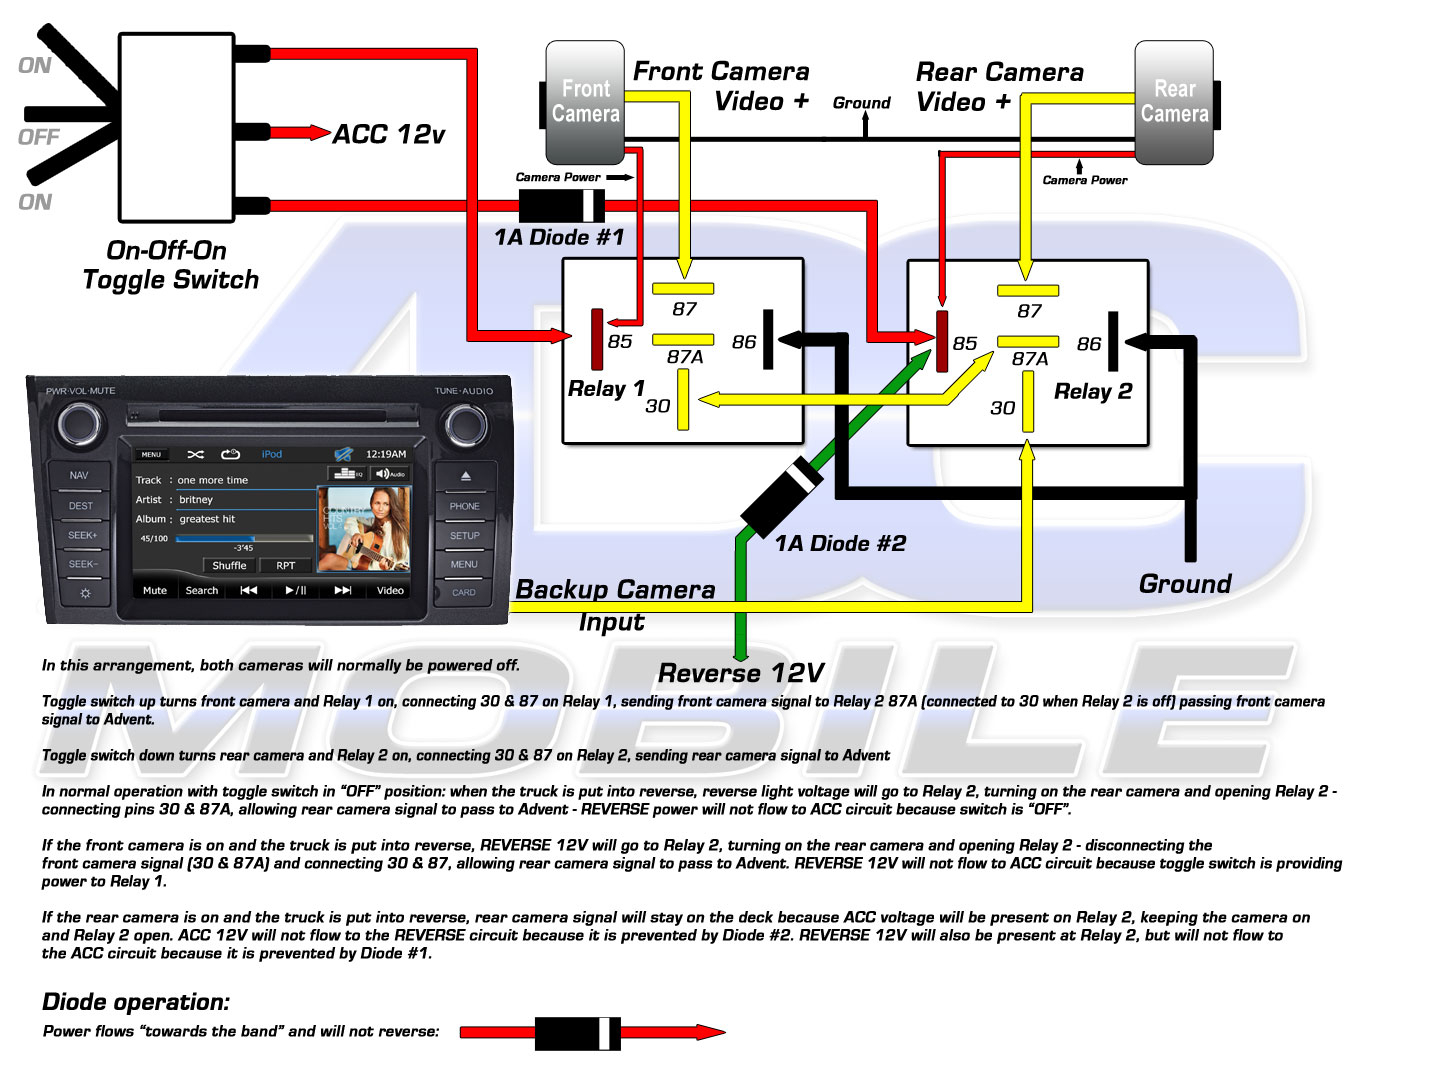 Toyota Tundra Backup Camera Wiring Diagram Sample 2014 Oem Amp Download Look Rightcamera Front